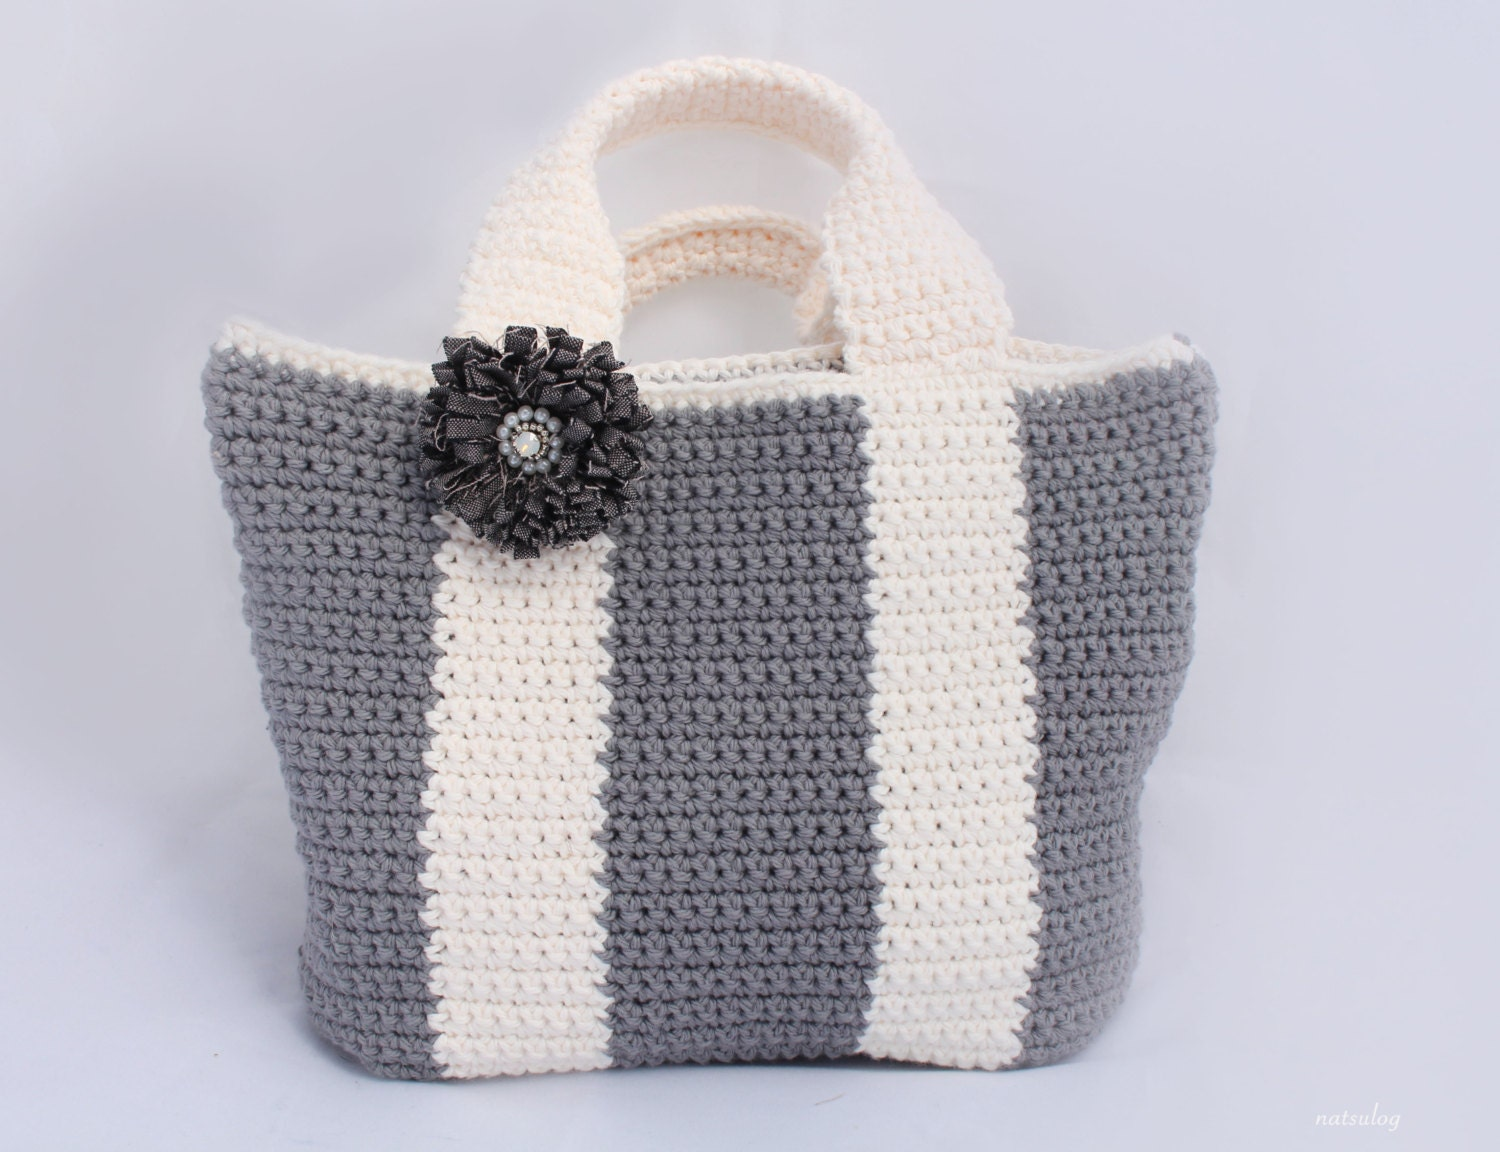 Crochet Simple Bag : Crochet simple tote bag pattern Bicolor bag Crochet by Natsulog